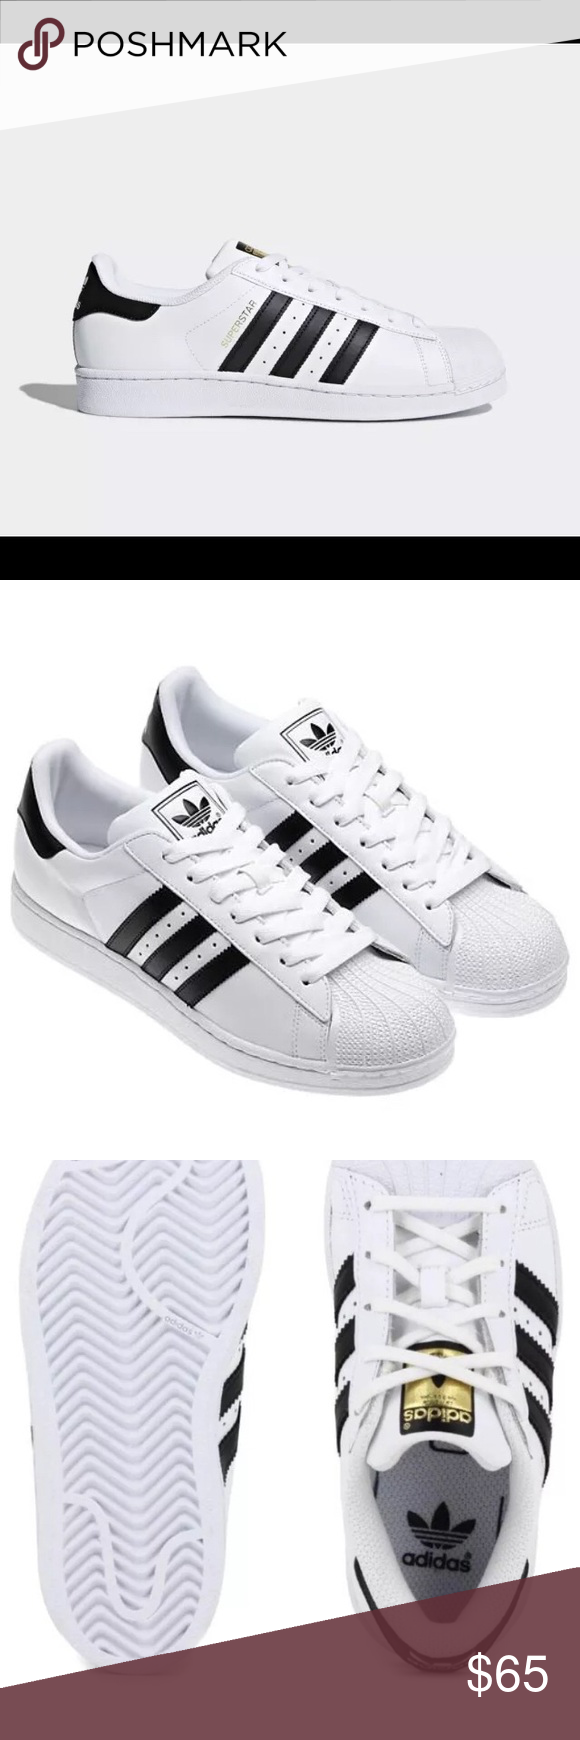 Adidas superstar zapatillas adidas Originals Superstar hombre 's White